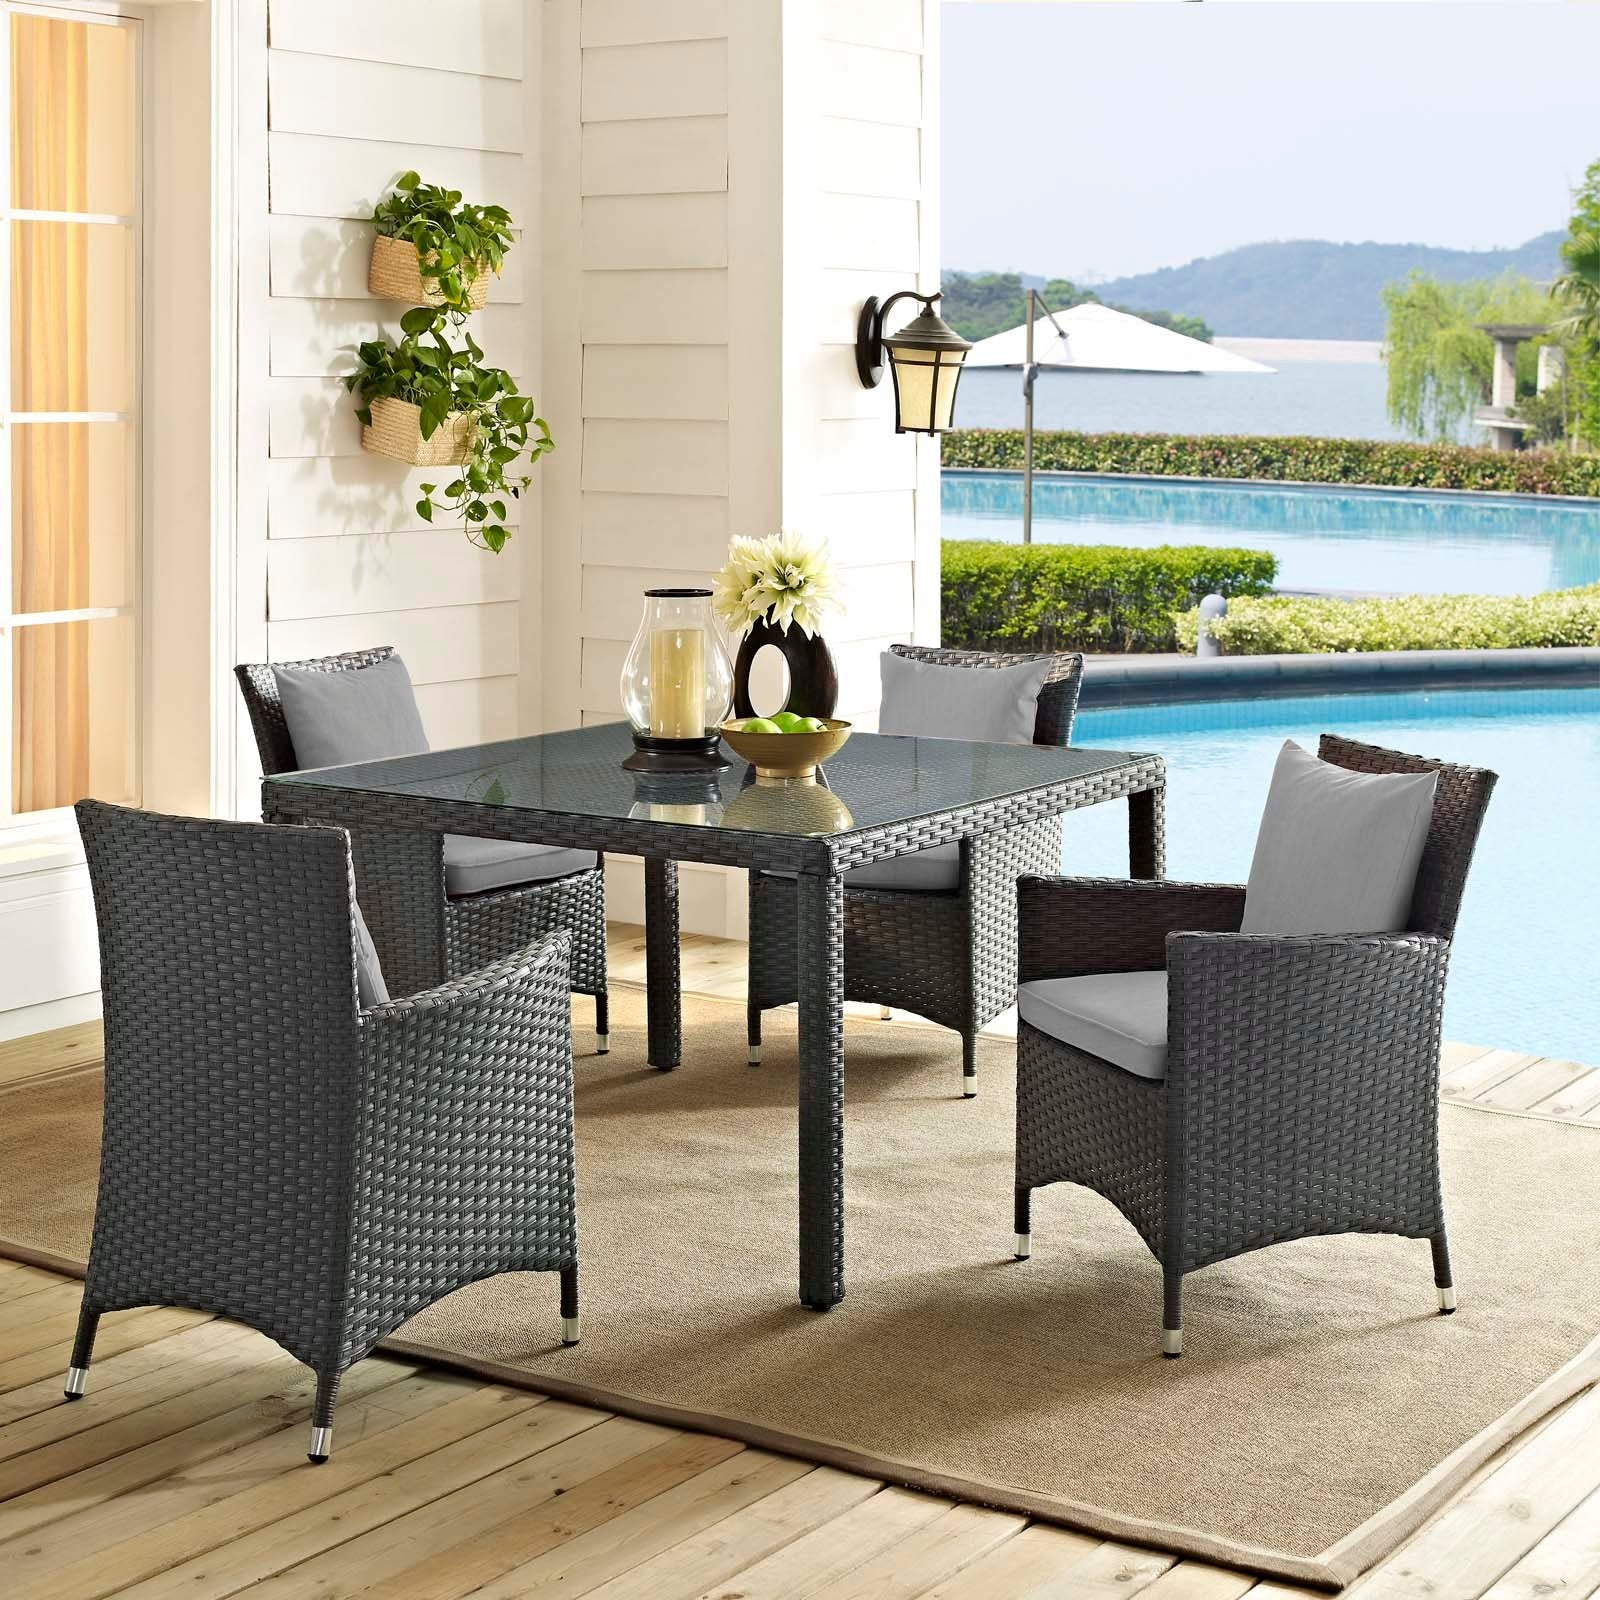 Sojourn 4 Piece Outdoor Patio Sunbrella® Dining Set - Canvas Gray